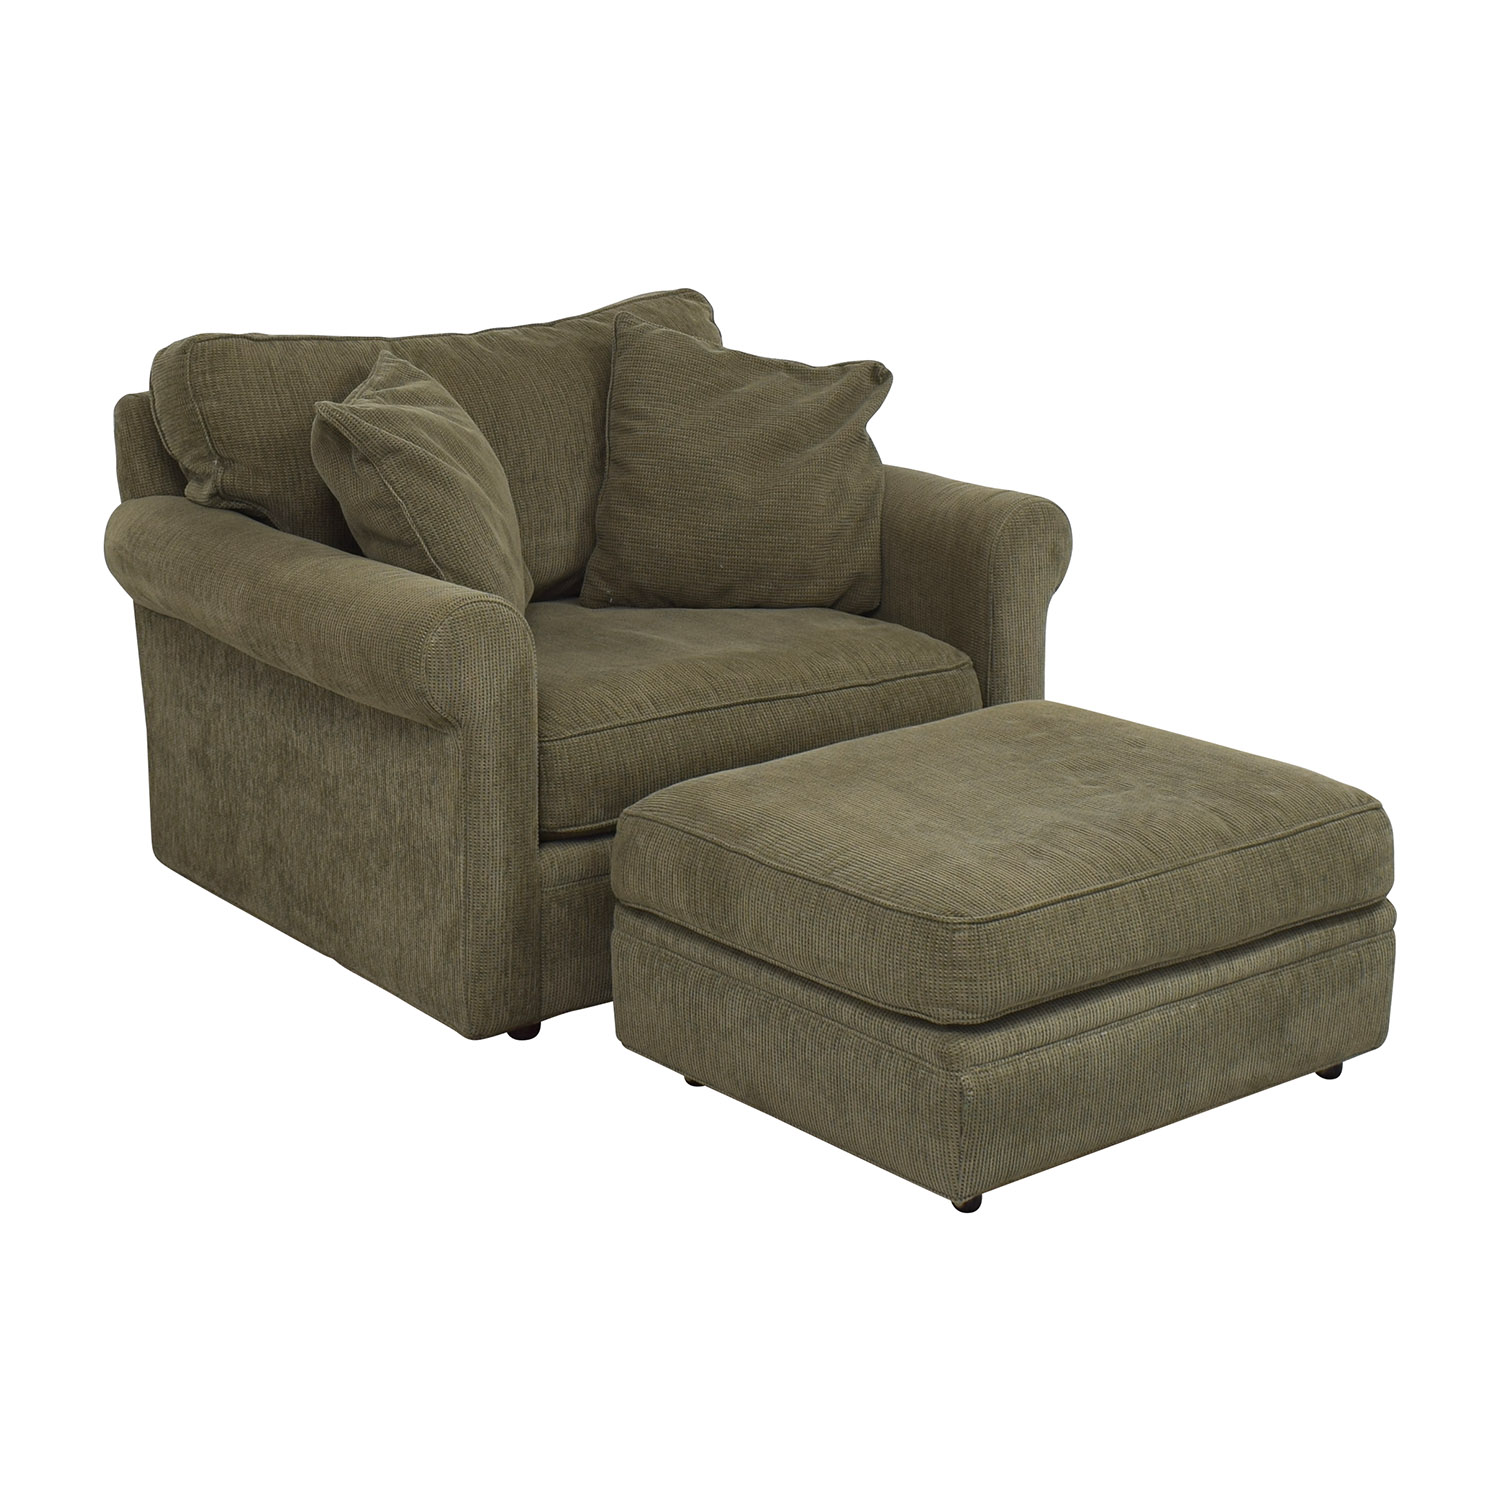 Crate & Barrel Upholstered Chair with Ottoman Crate & Barrel